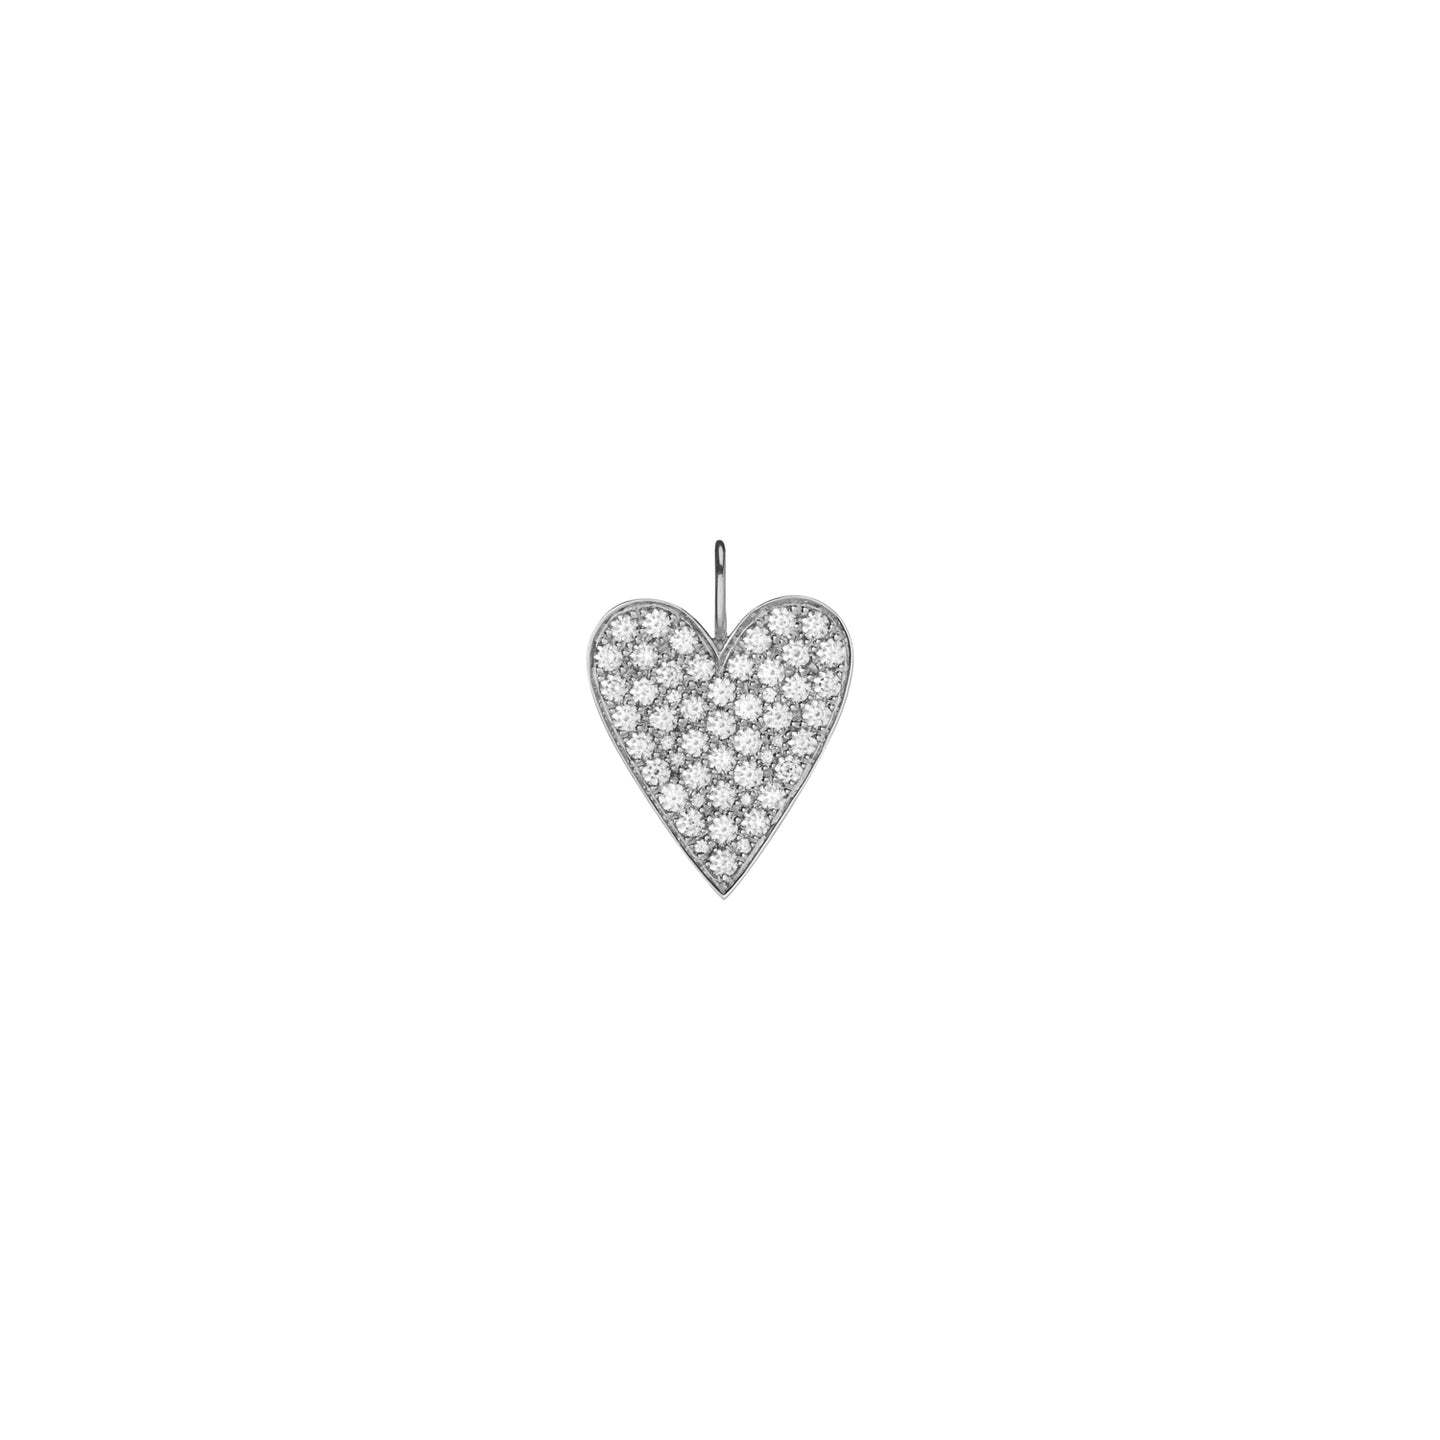 Large Heart with Pave White Diamonds